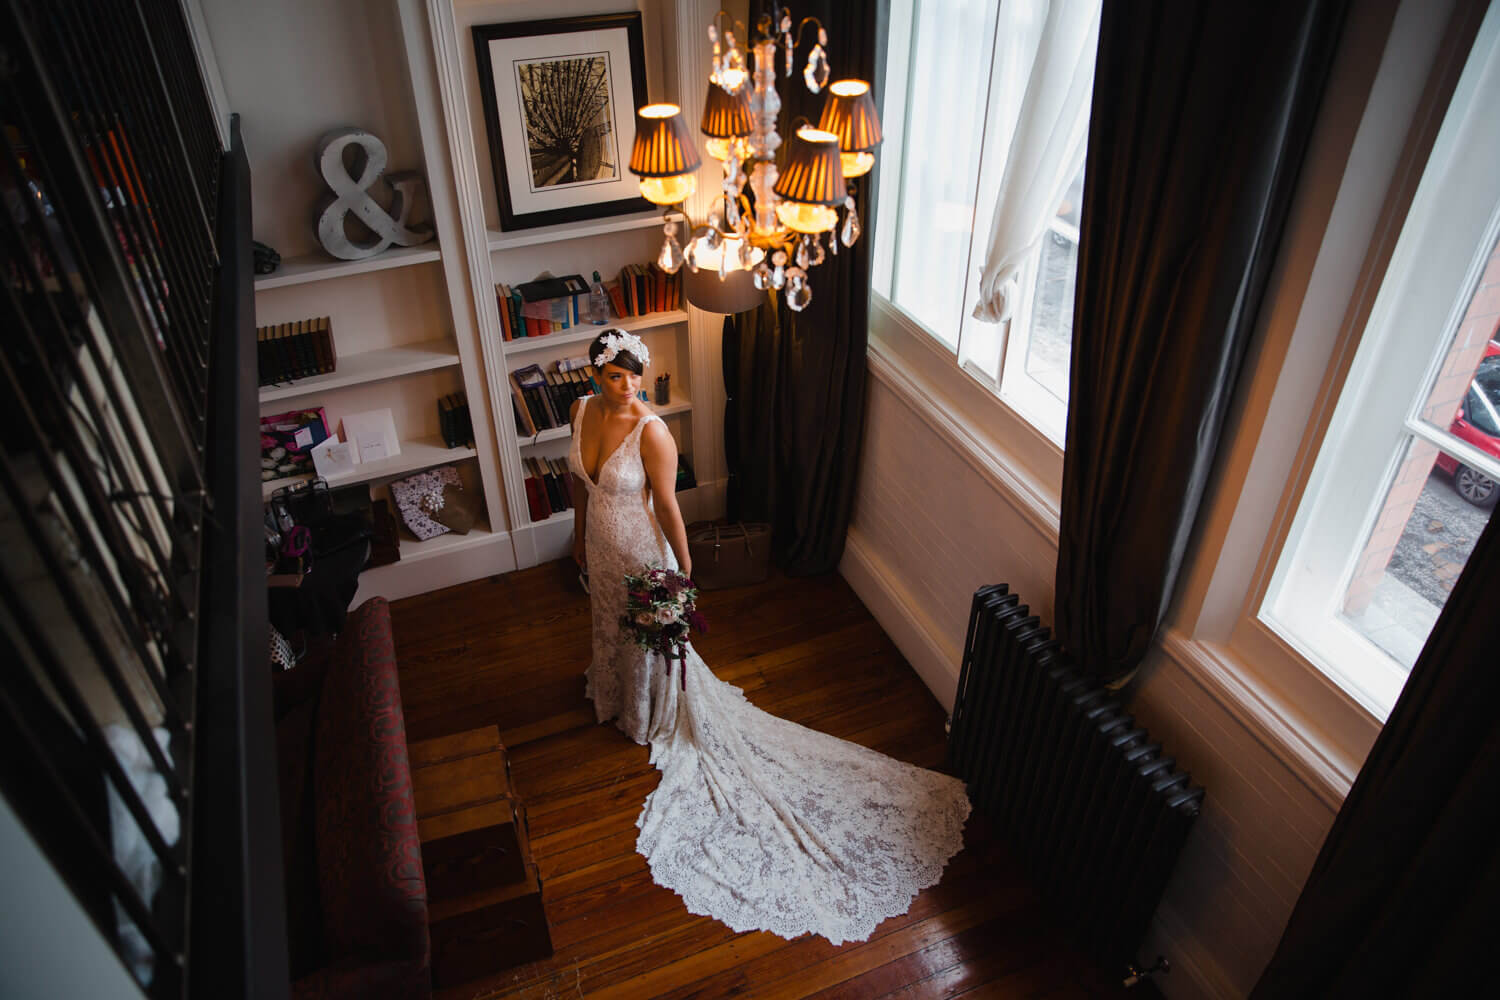 wide angle lens portrait of bride in wedding dress posing with bouquet of flowers at great john street hotel